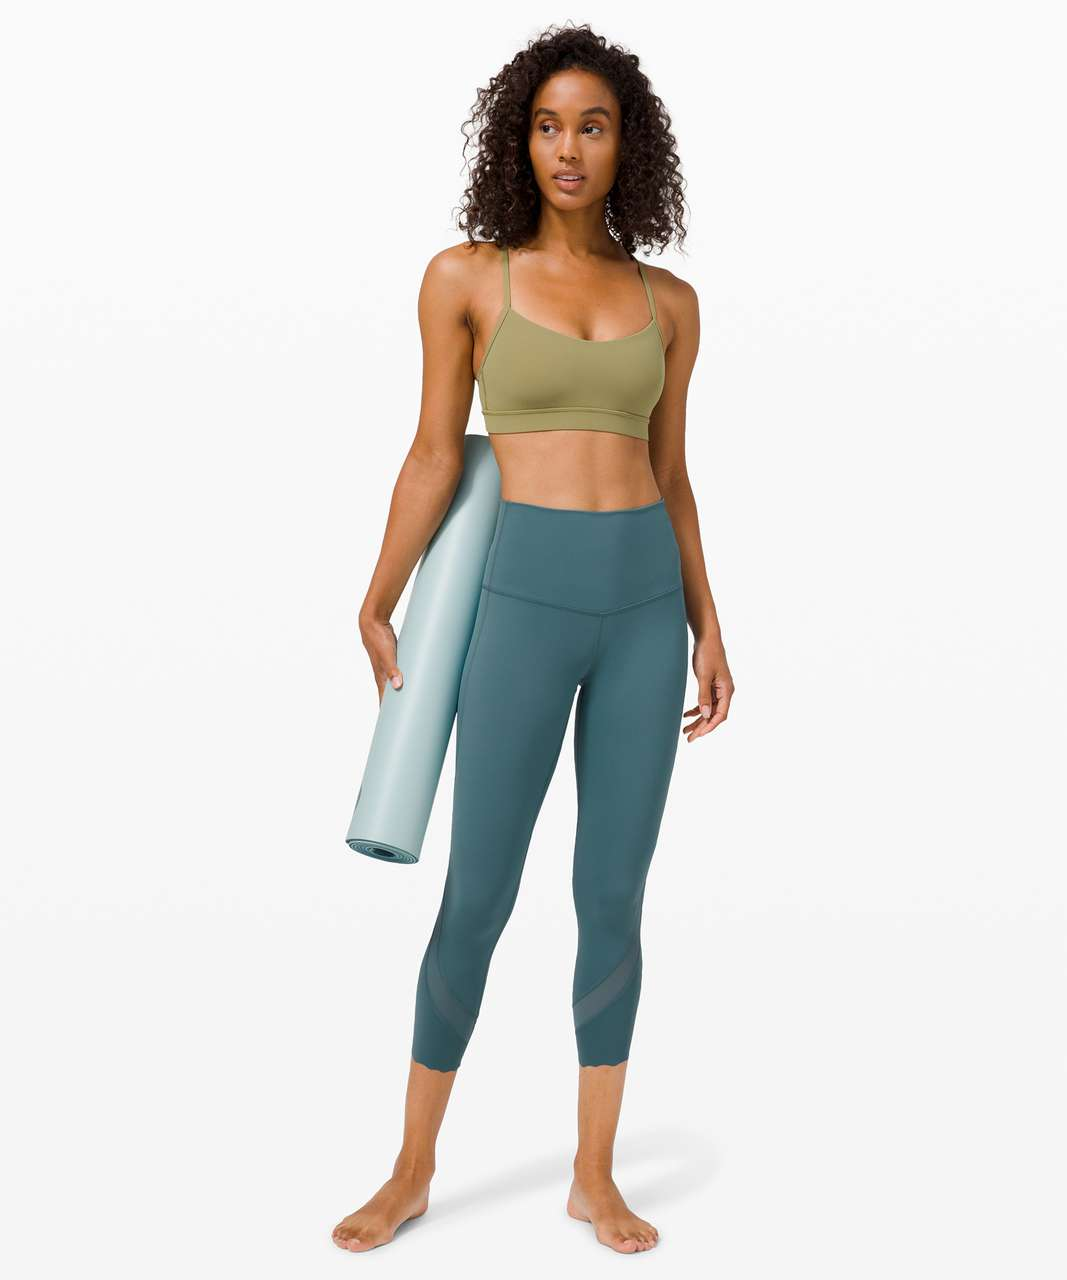 "Lululemon Wunder Under Crop High-Rise *Roll Down Scallop Full-On Luxtreme 23"" - Desert Teal"